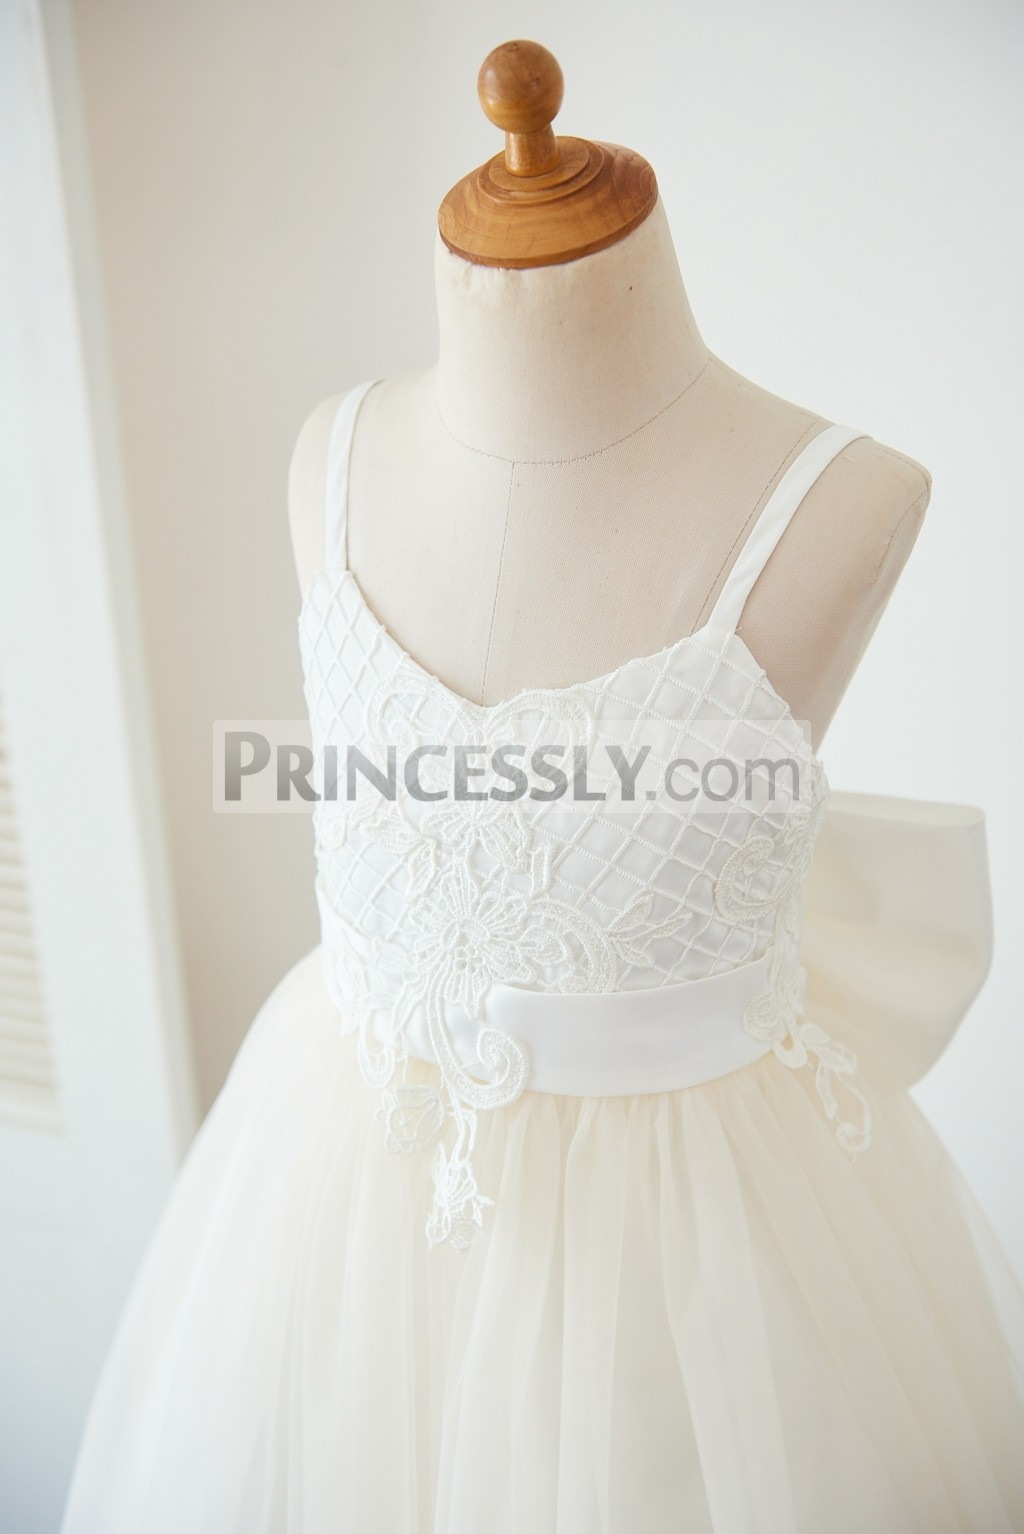 Check pattern lace bodice with belt